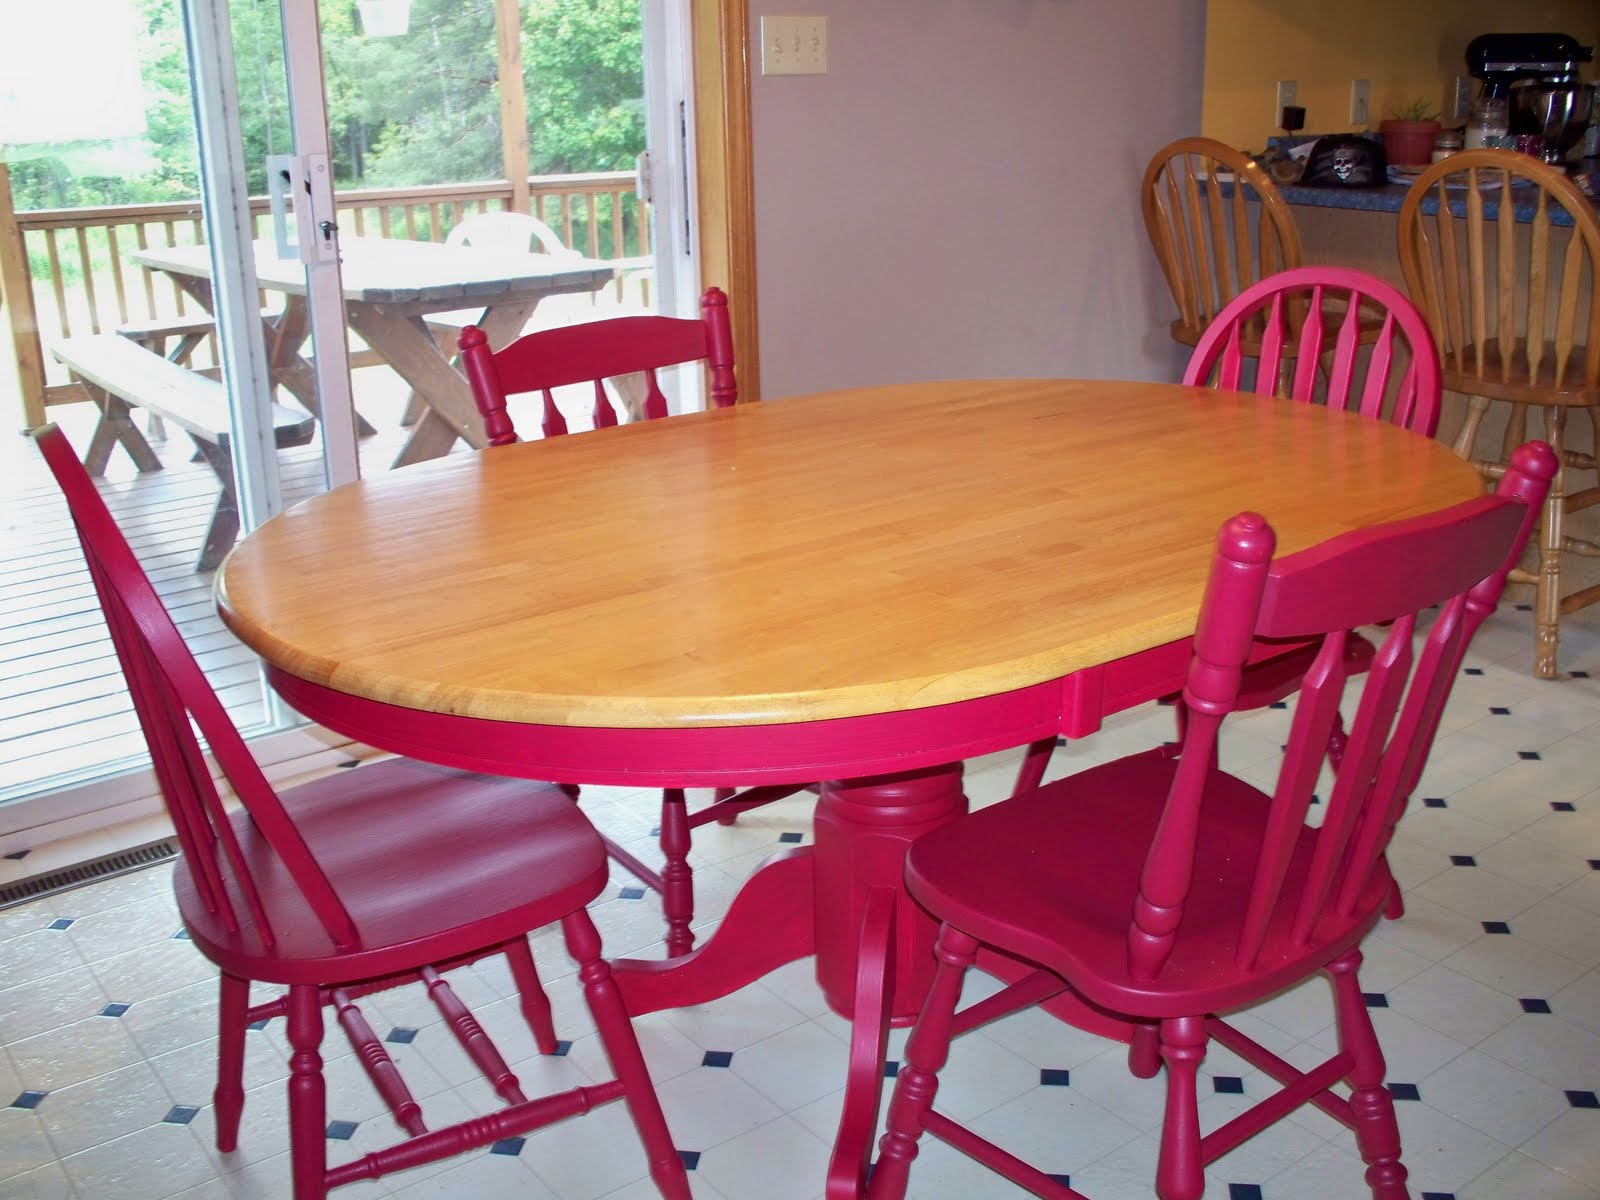 The domestic groove free kitchen table redo - Kitchen table redo ...